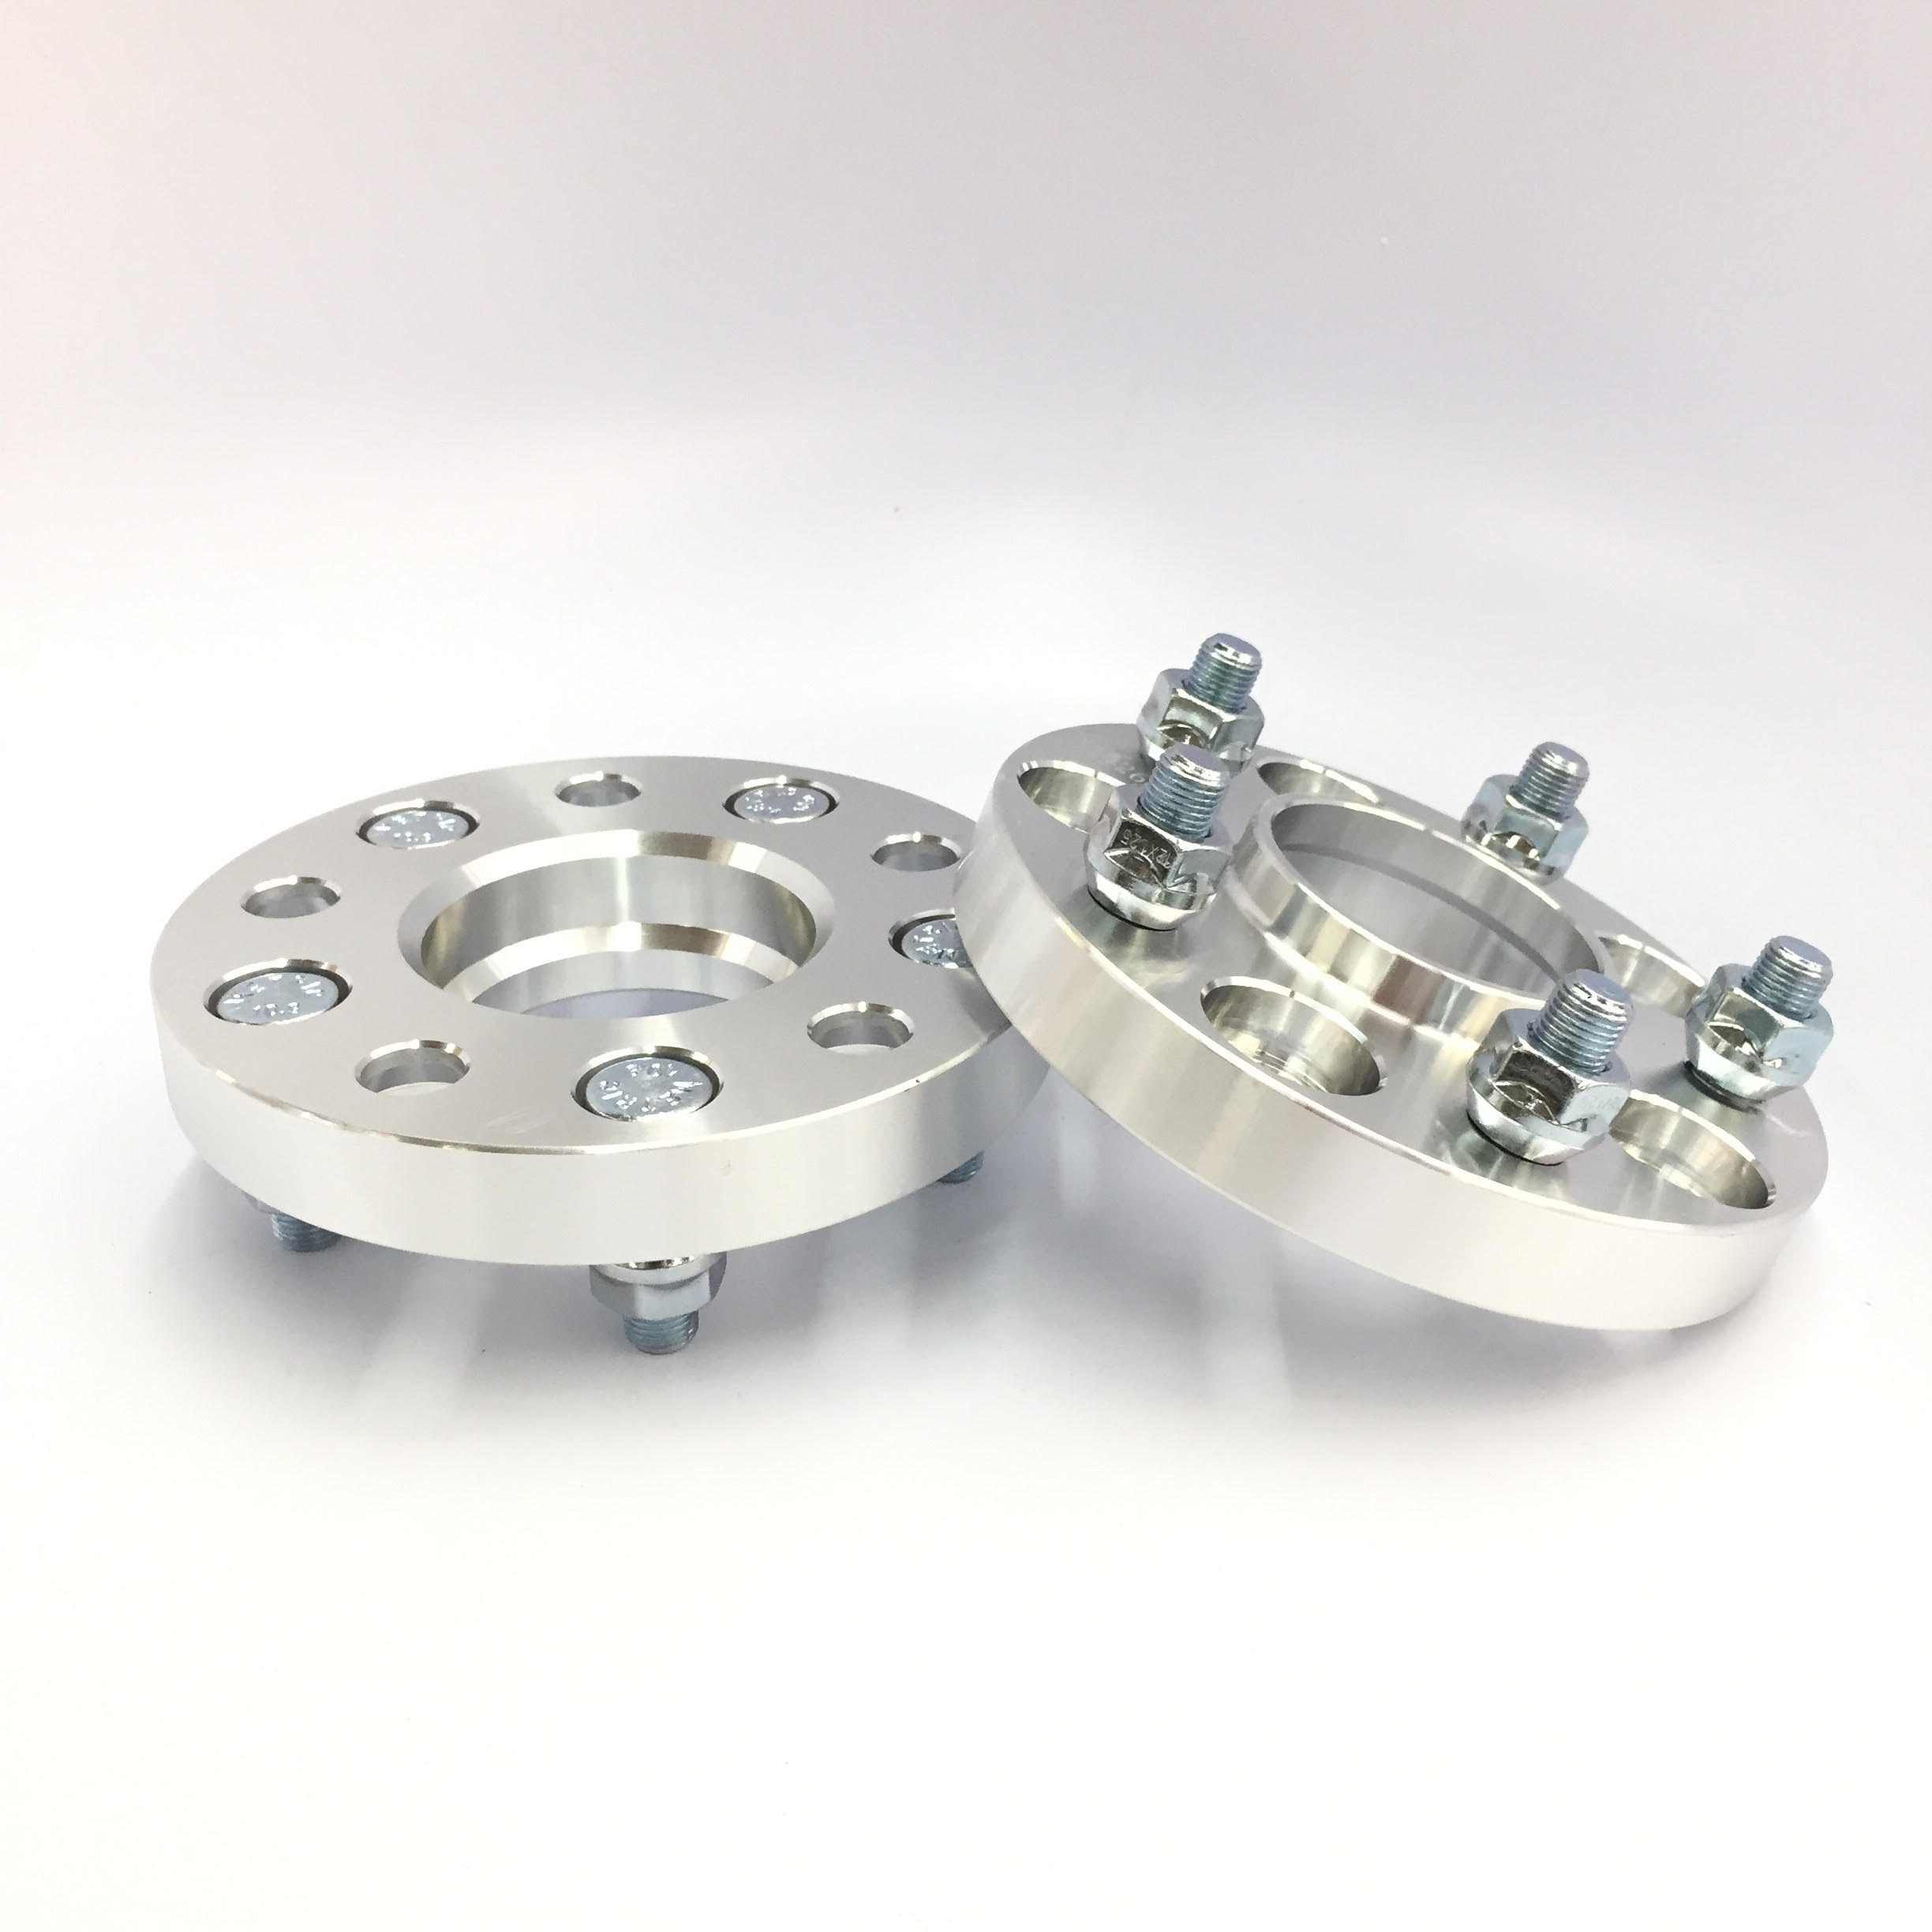 HUBCENTRIC WHEEL SPACERS 5X4.75 5X120.65 5X120.7 70.3 CB 12X1.5 25MM 1 INCH